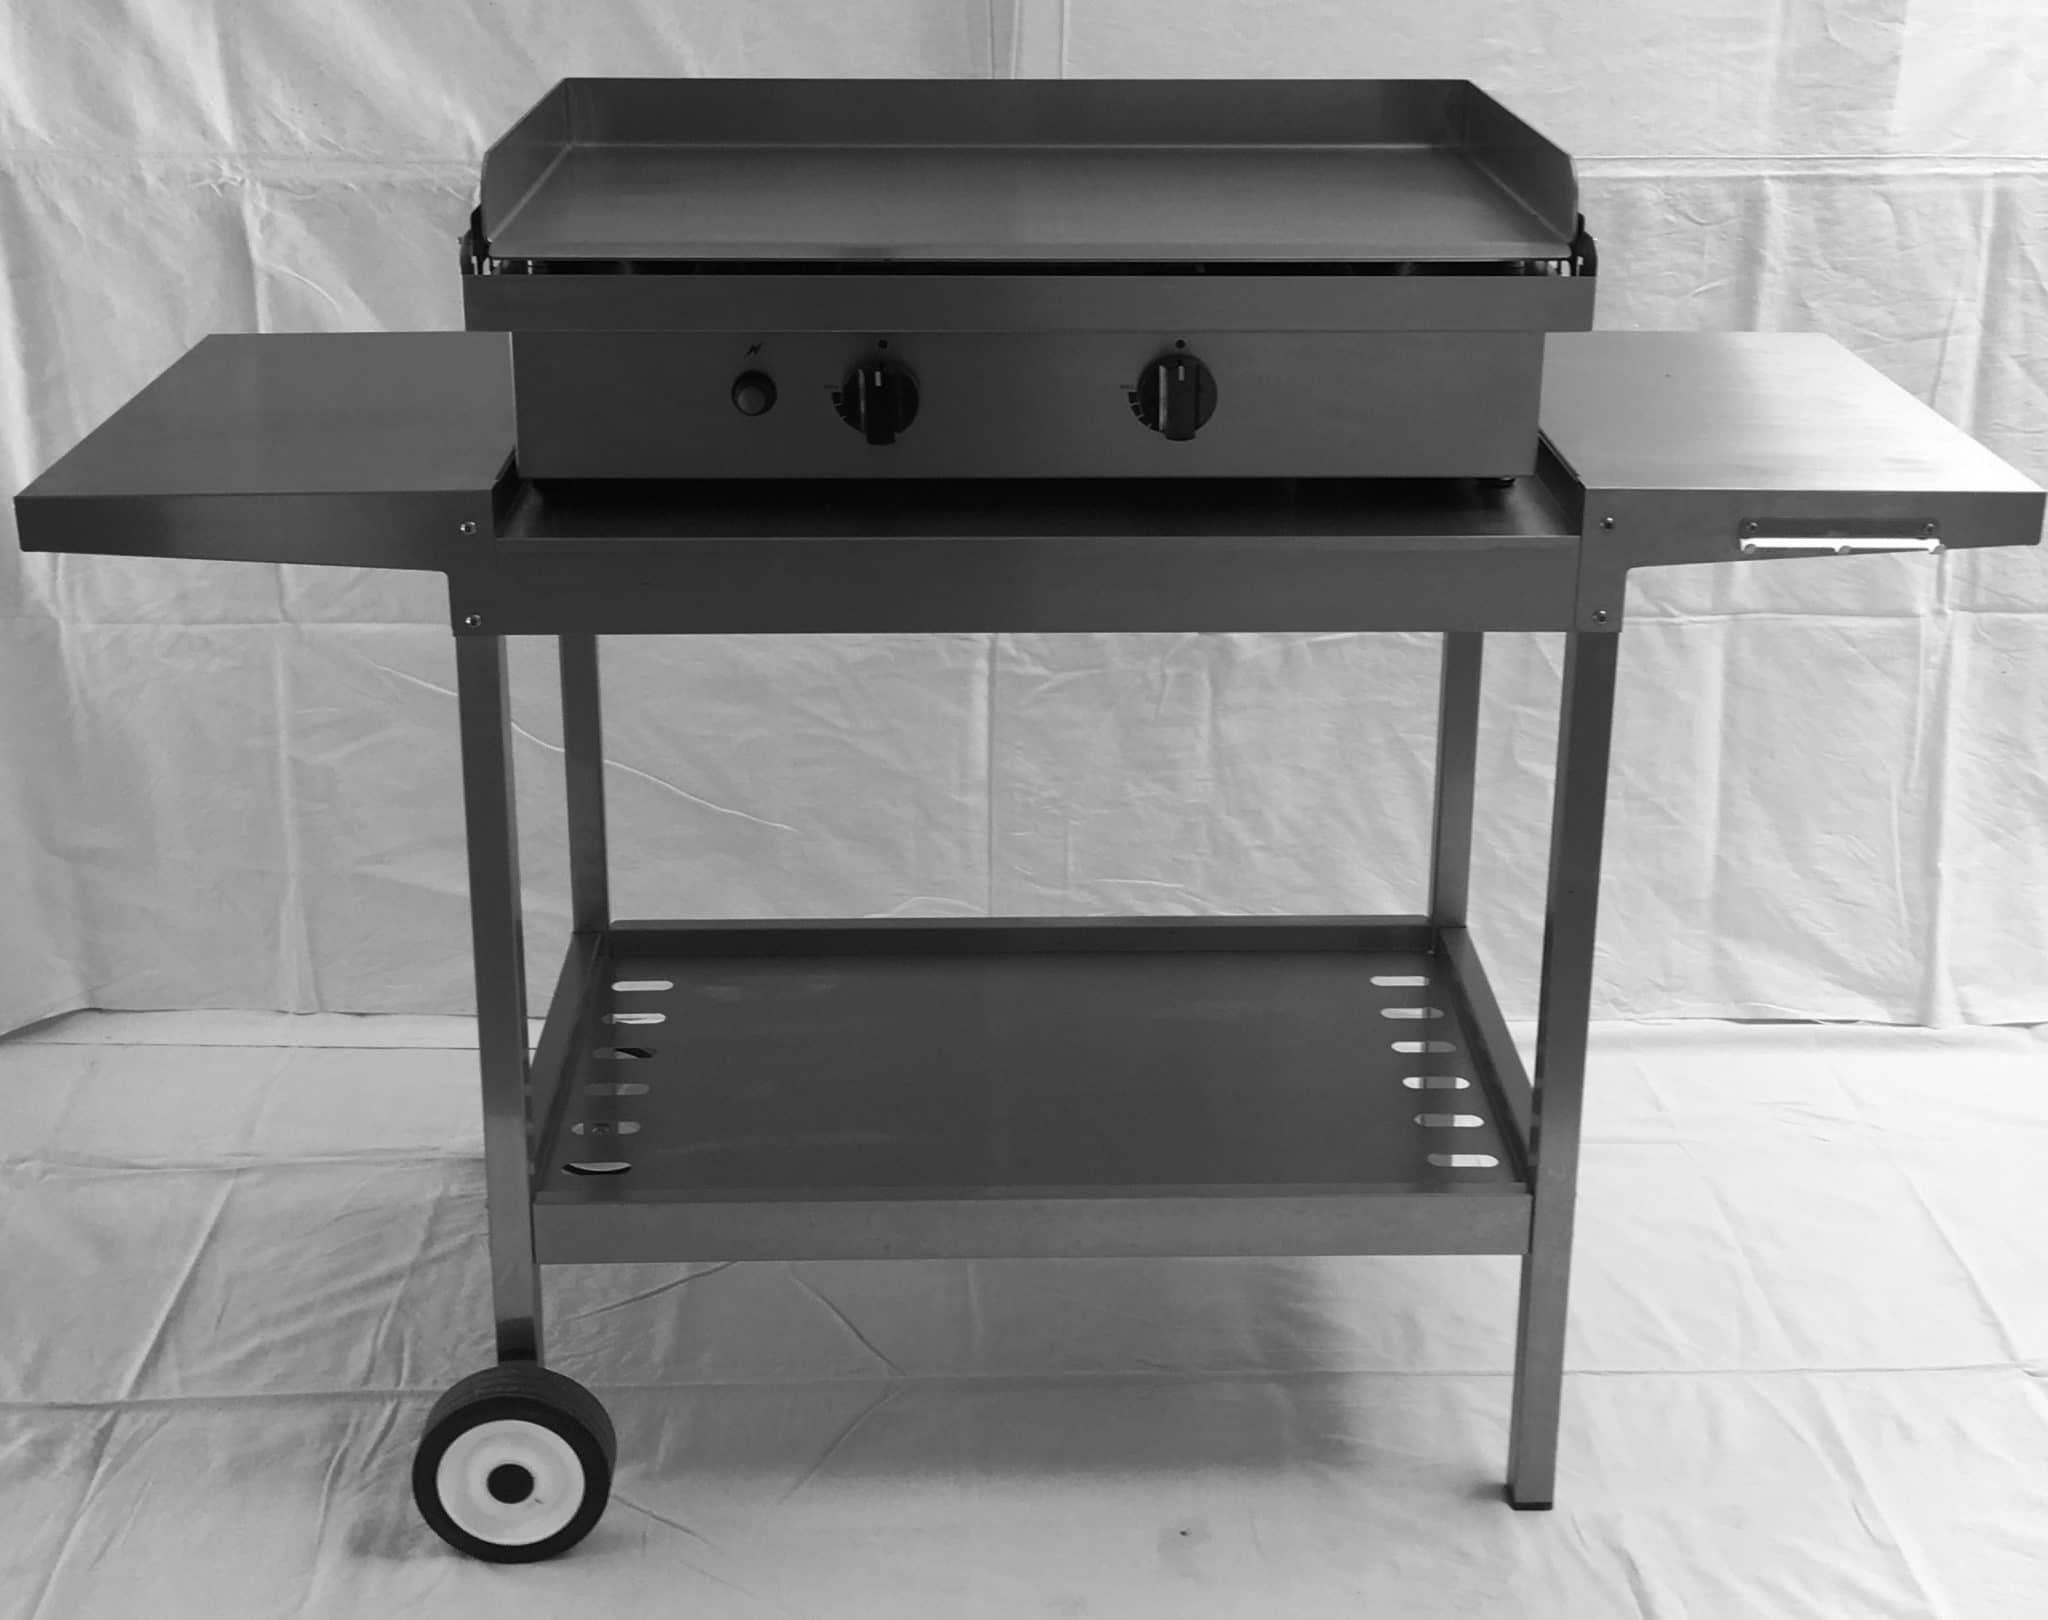 blackstone flat top griddle, blackstone 36 flat top griddle